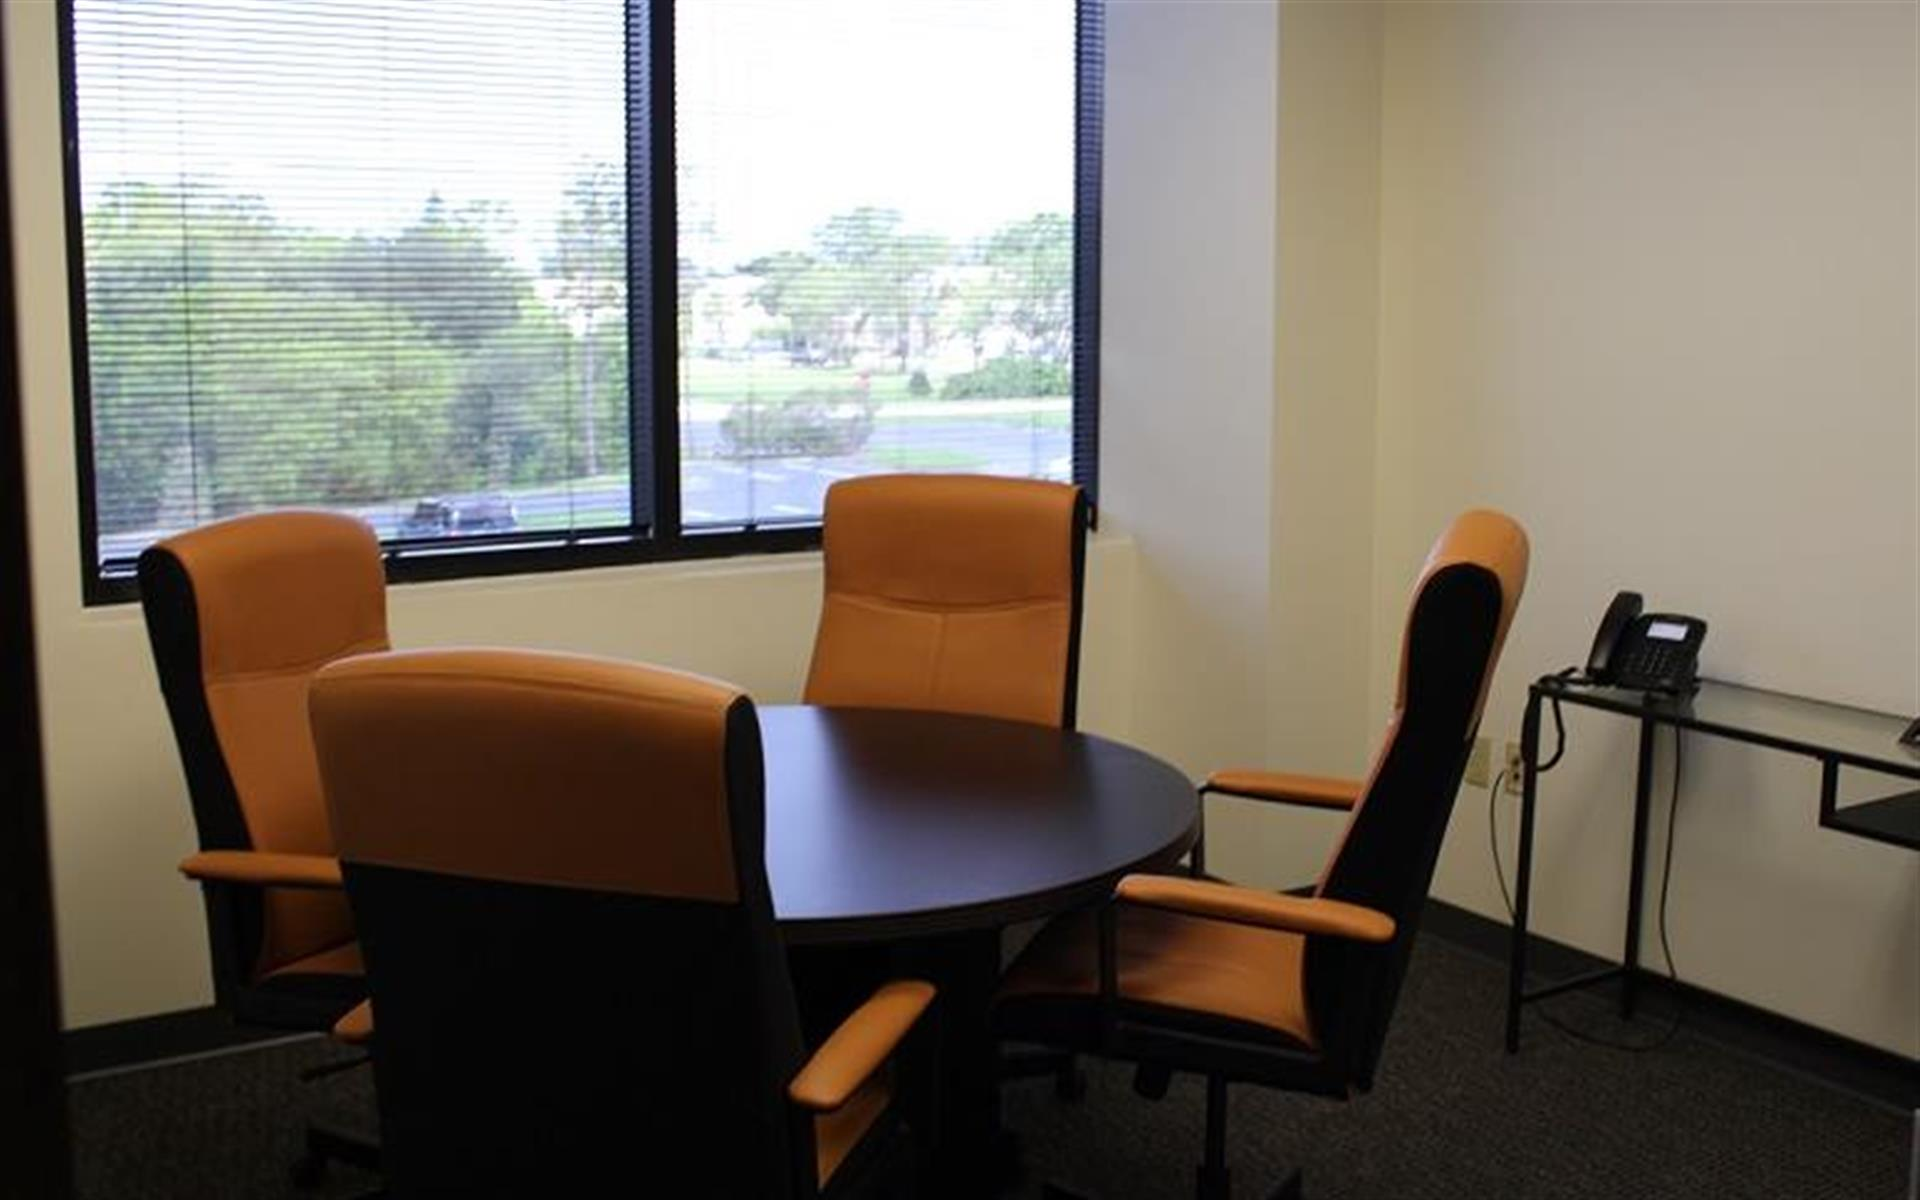 Executive Center Suites - Meeting Room & Work Space